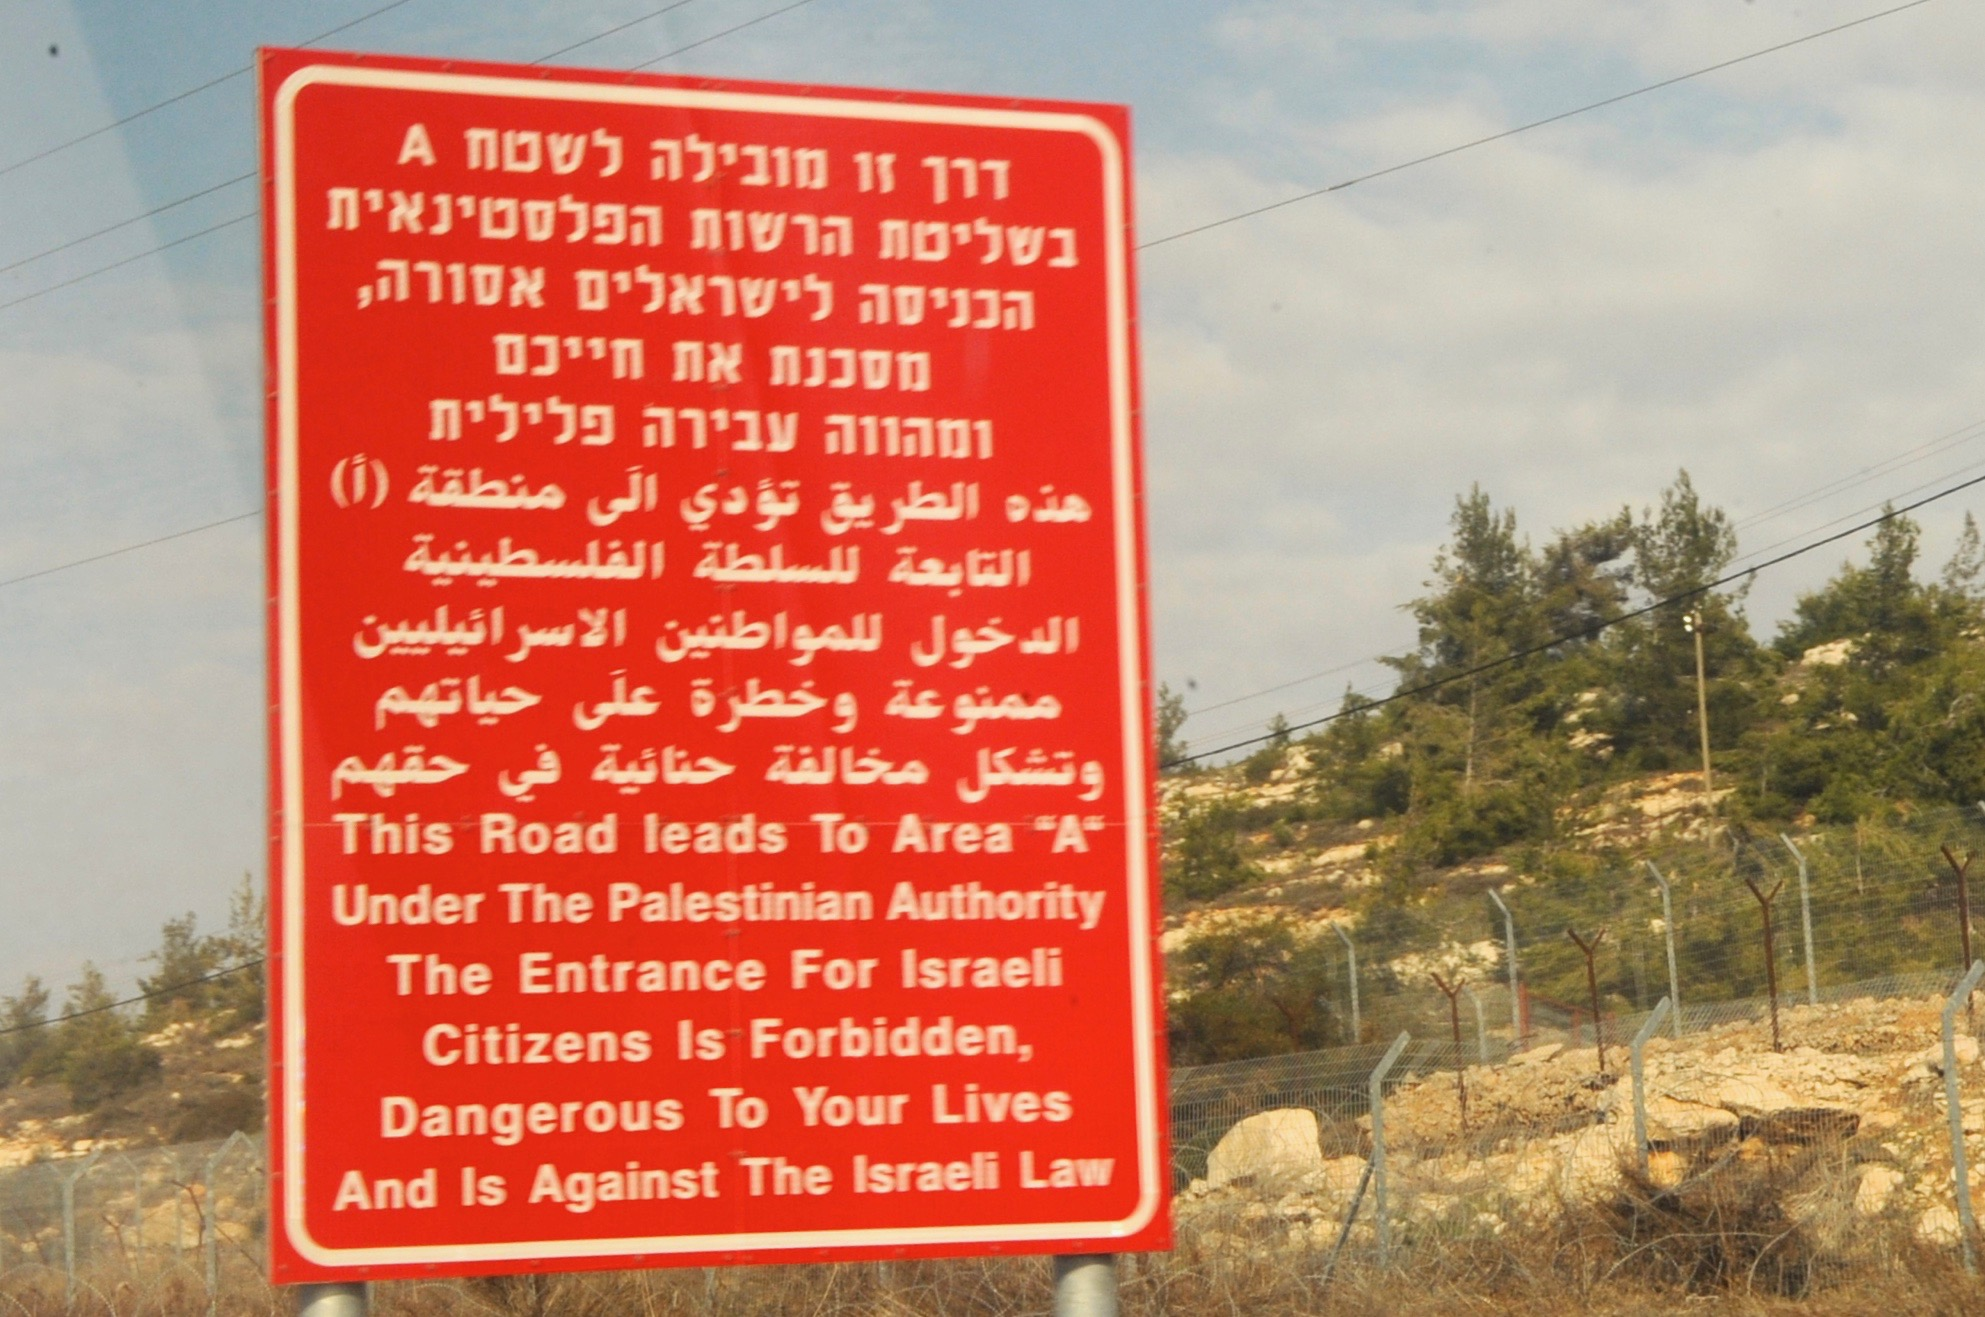 An ominous warning sign at the border of Israel and the West Bank.